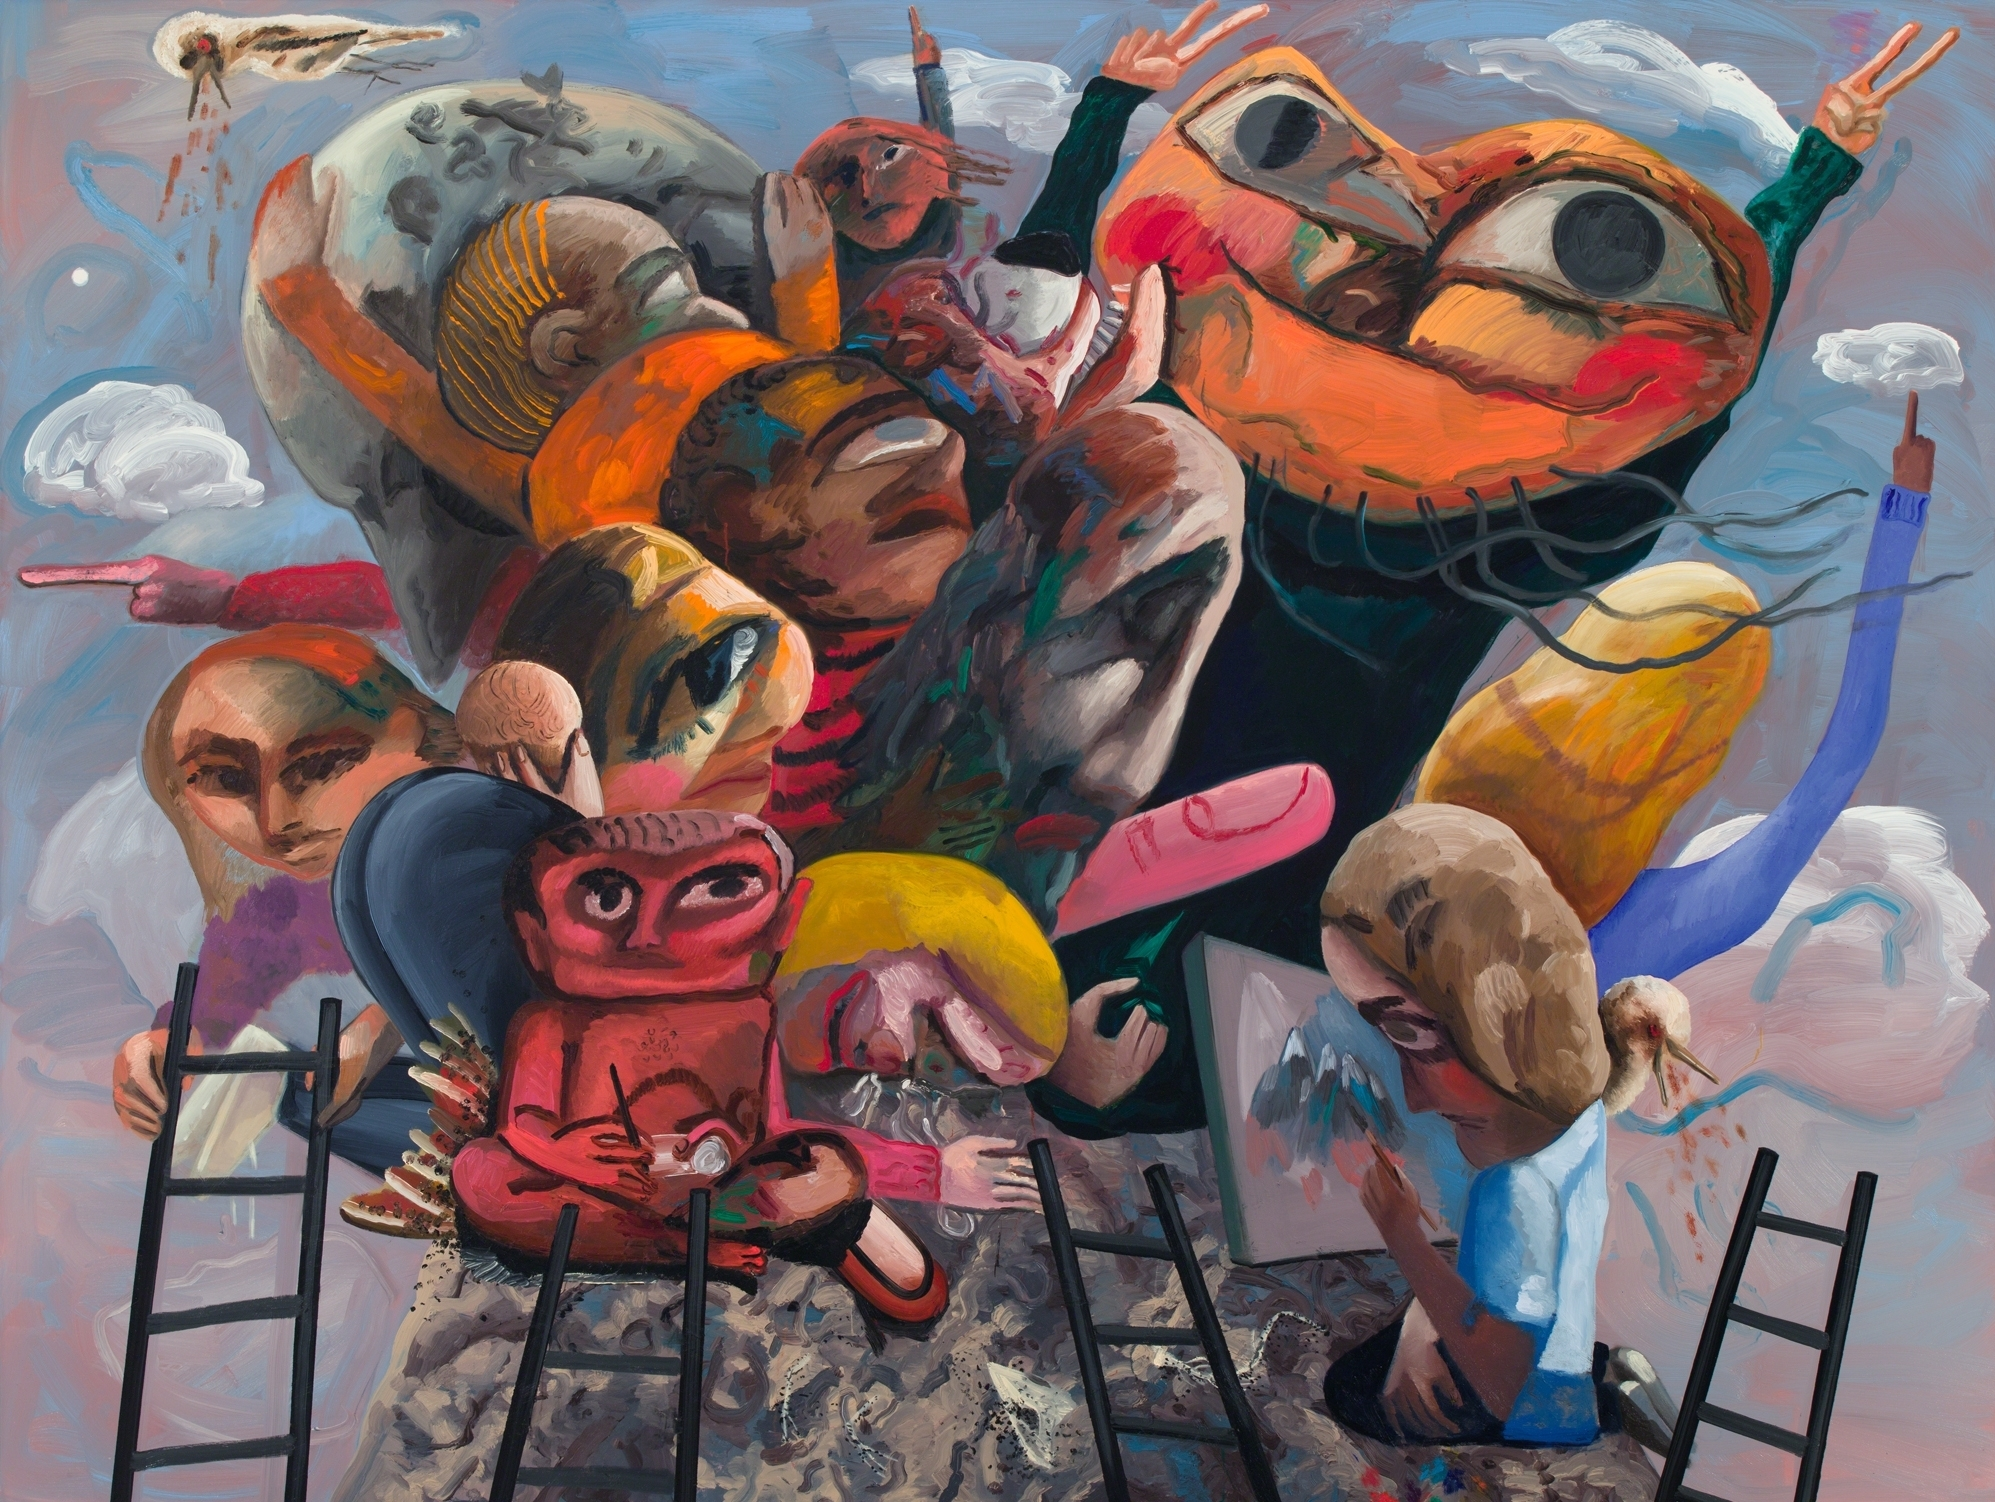 Arte Visual Group Selected Works Imagine Me And You Dana Schutz Exhibitions